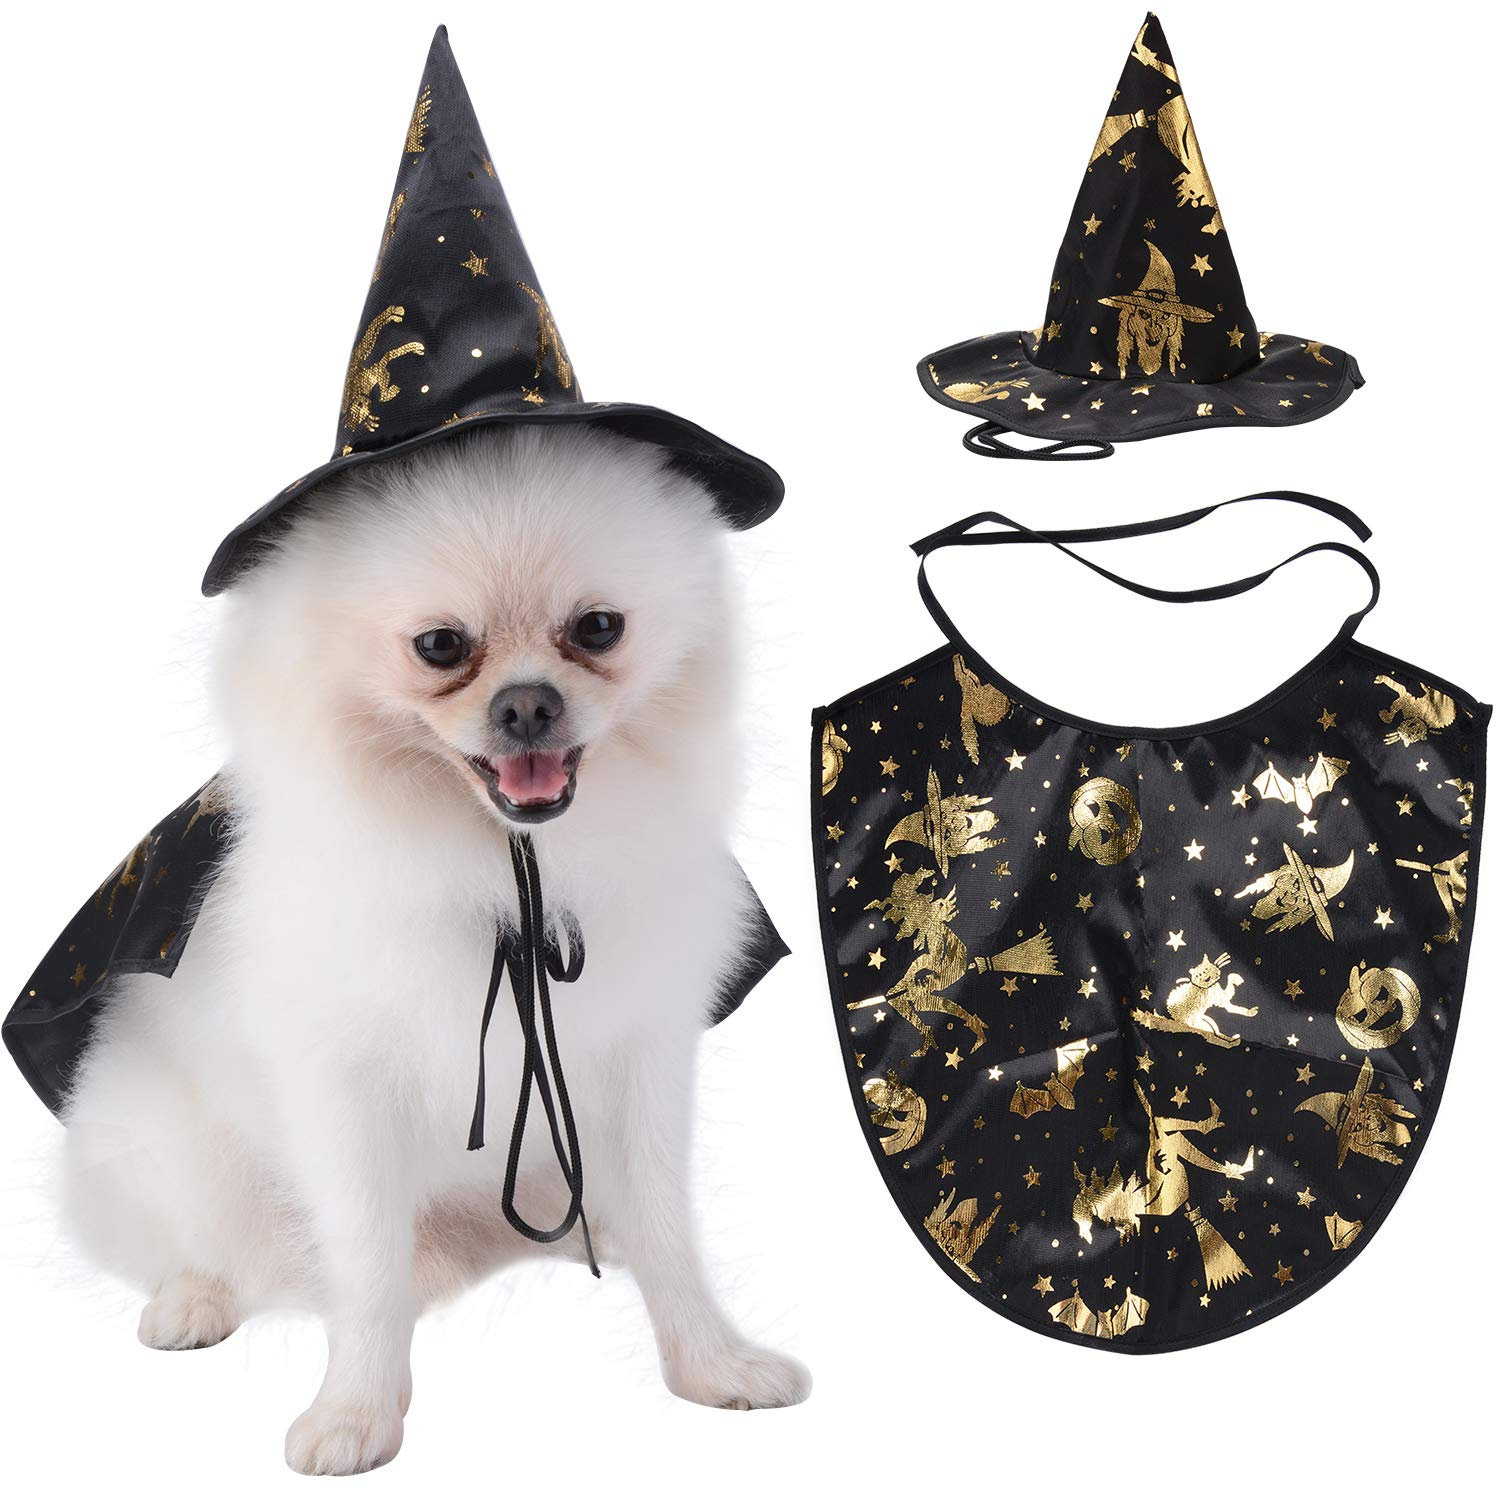 Legendog Dog Costume, Halloween Costumes for Small Dogs, Creative Dog Cape with Witch Hat, Halloween Pet Costume